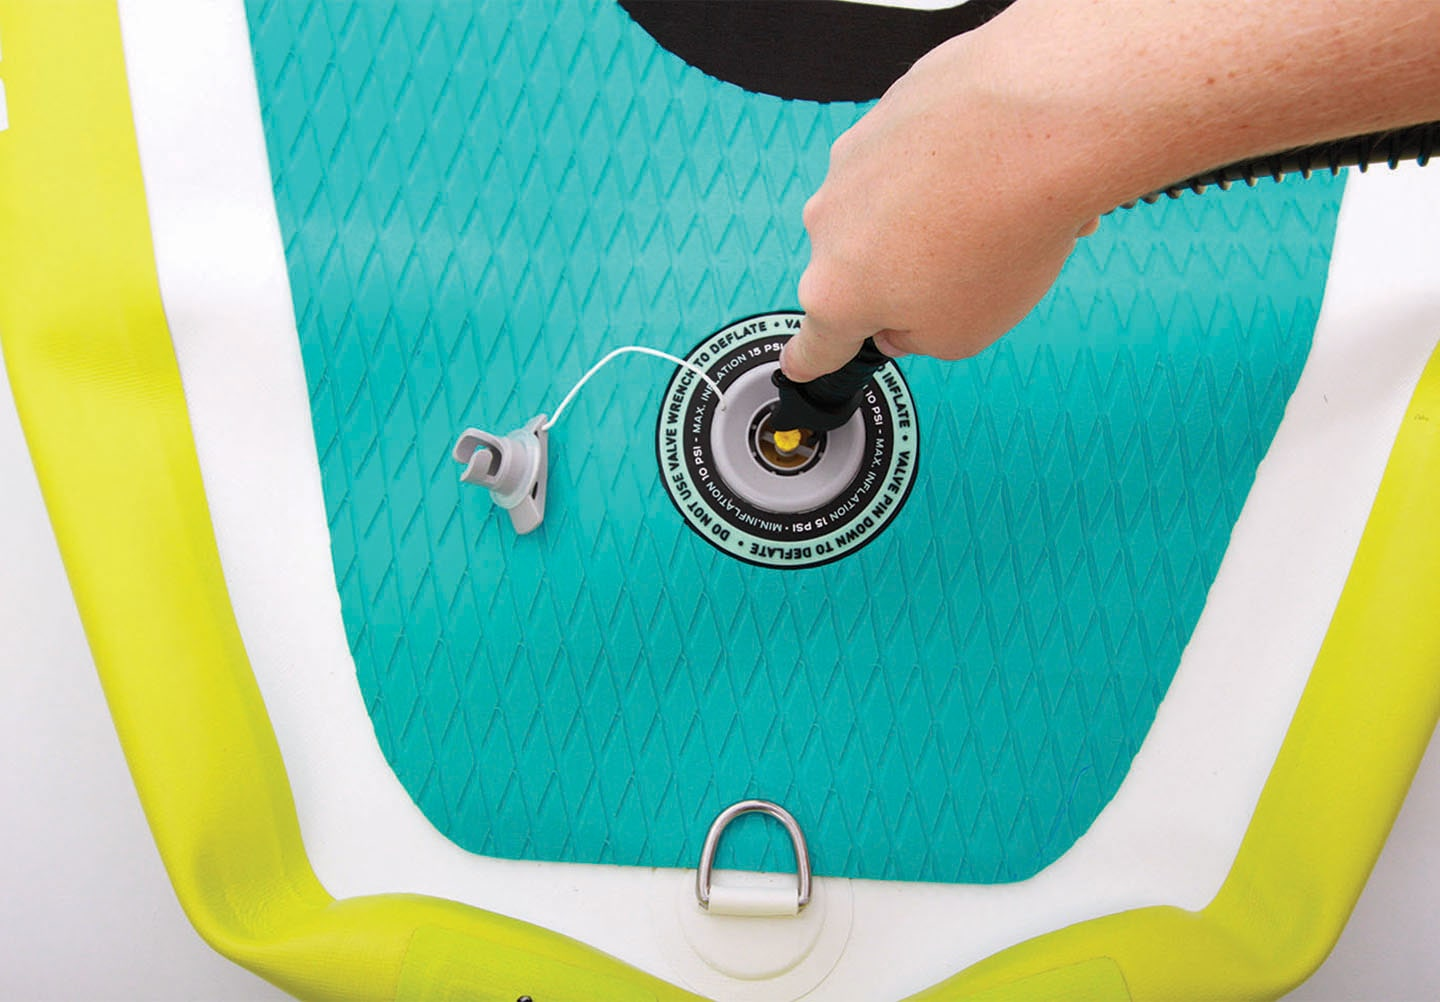 Before you start inflating, be sure that the valve's yellow pin is in the upright position.